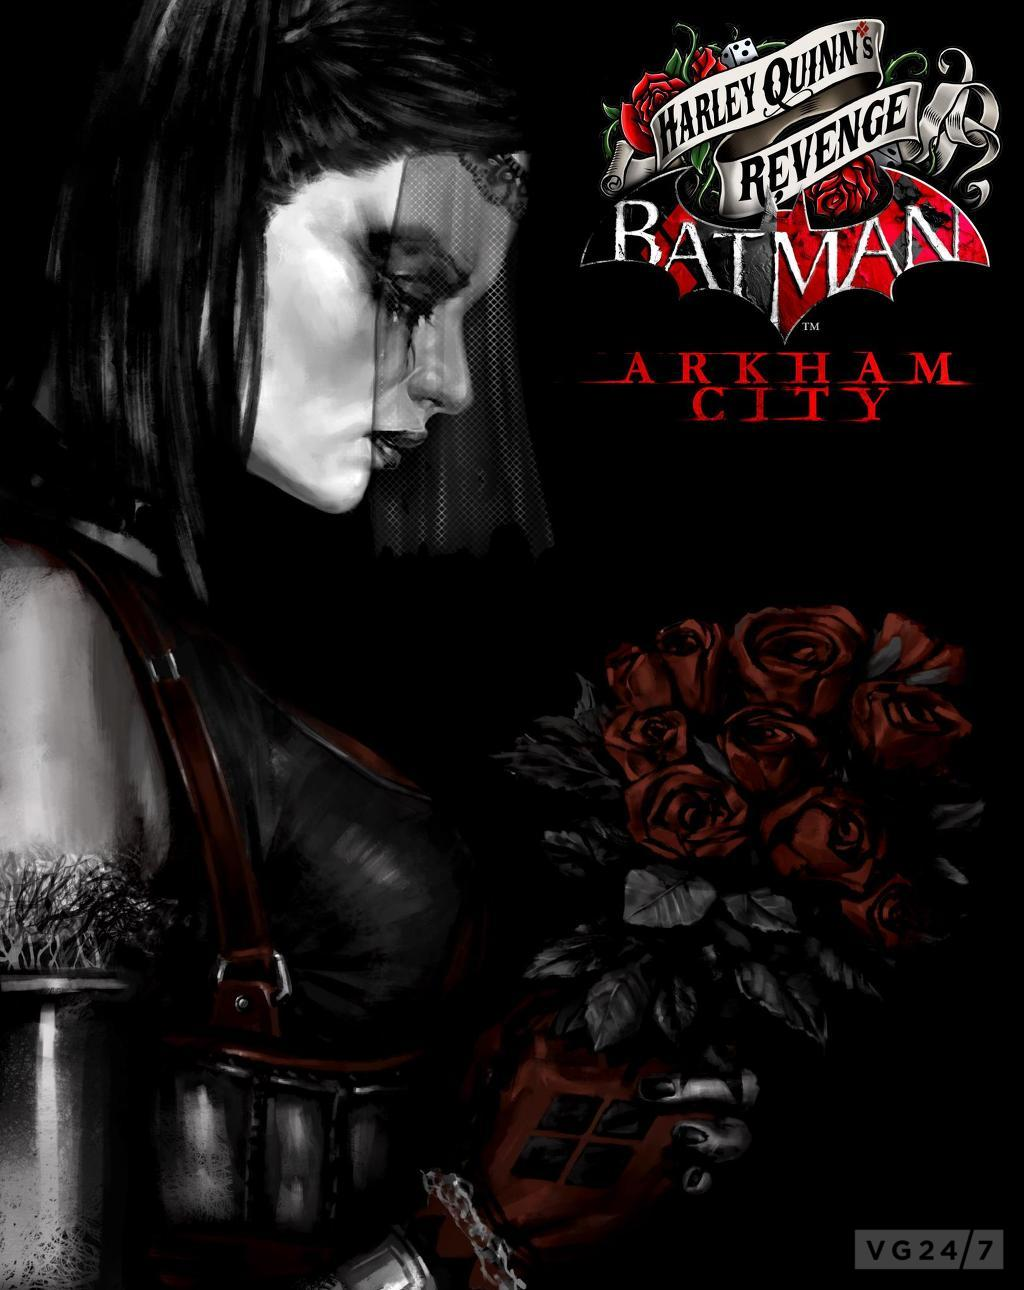 BATMAN ARKHAM CITY HARLEY QUINNS REVENGE DLC | ALL PC FAST ...